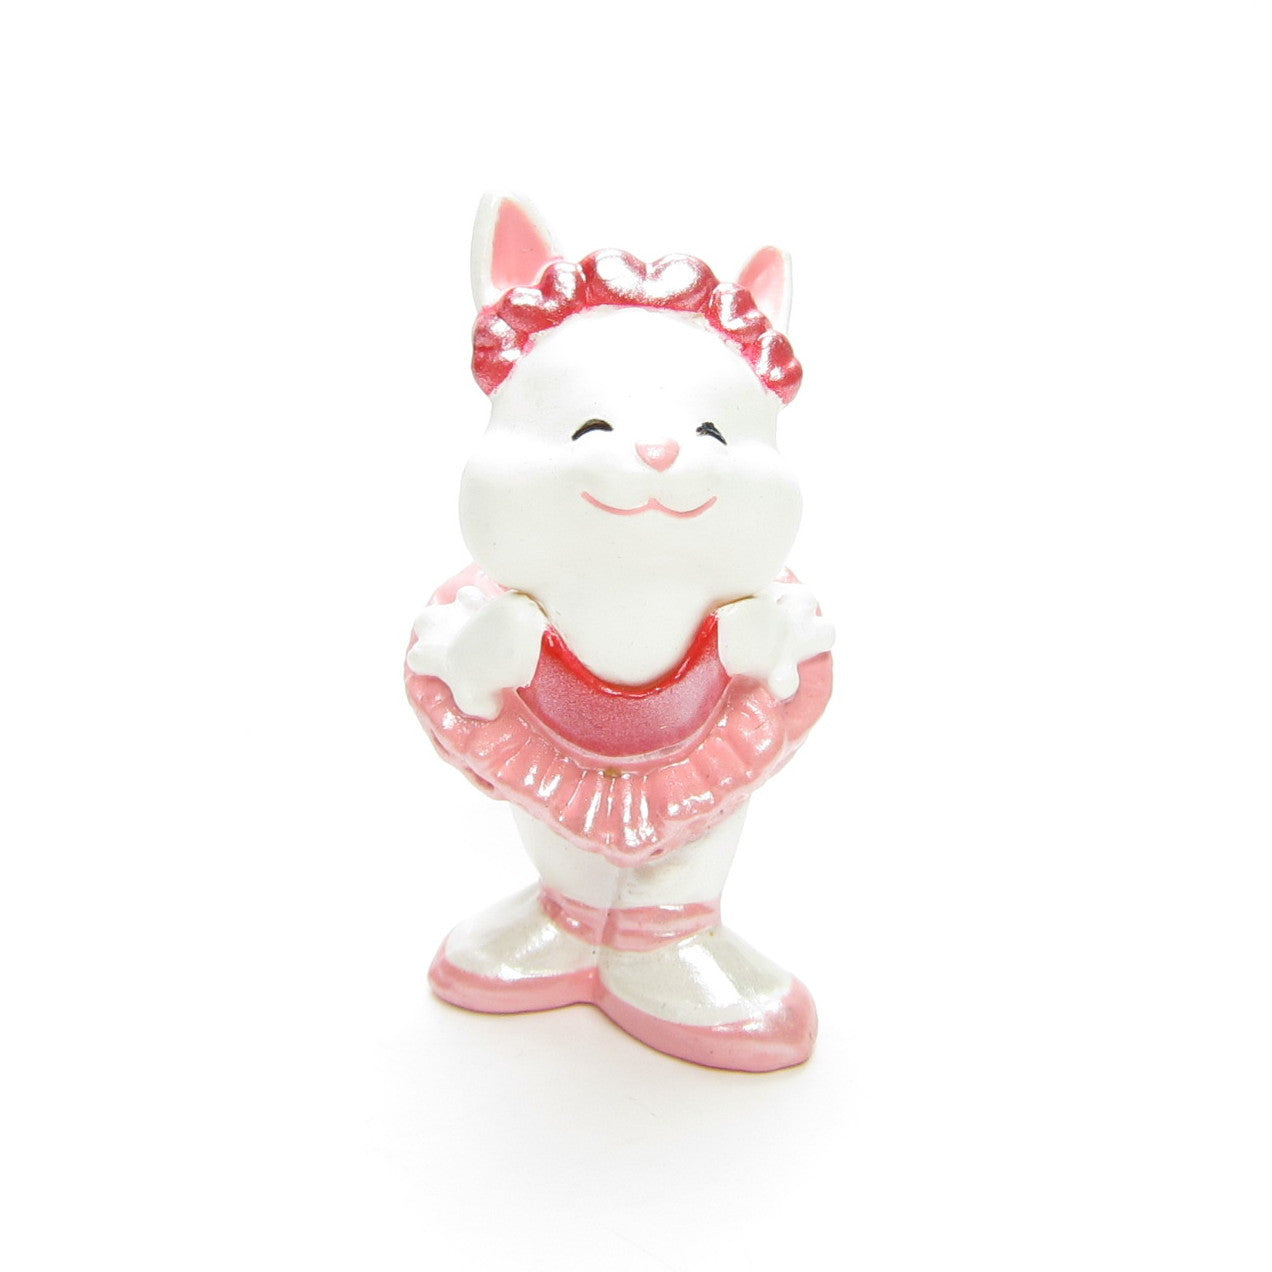 Hallmark Bunny in Tutu Merry Miniatures figurine